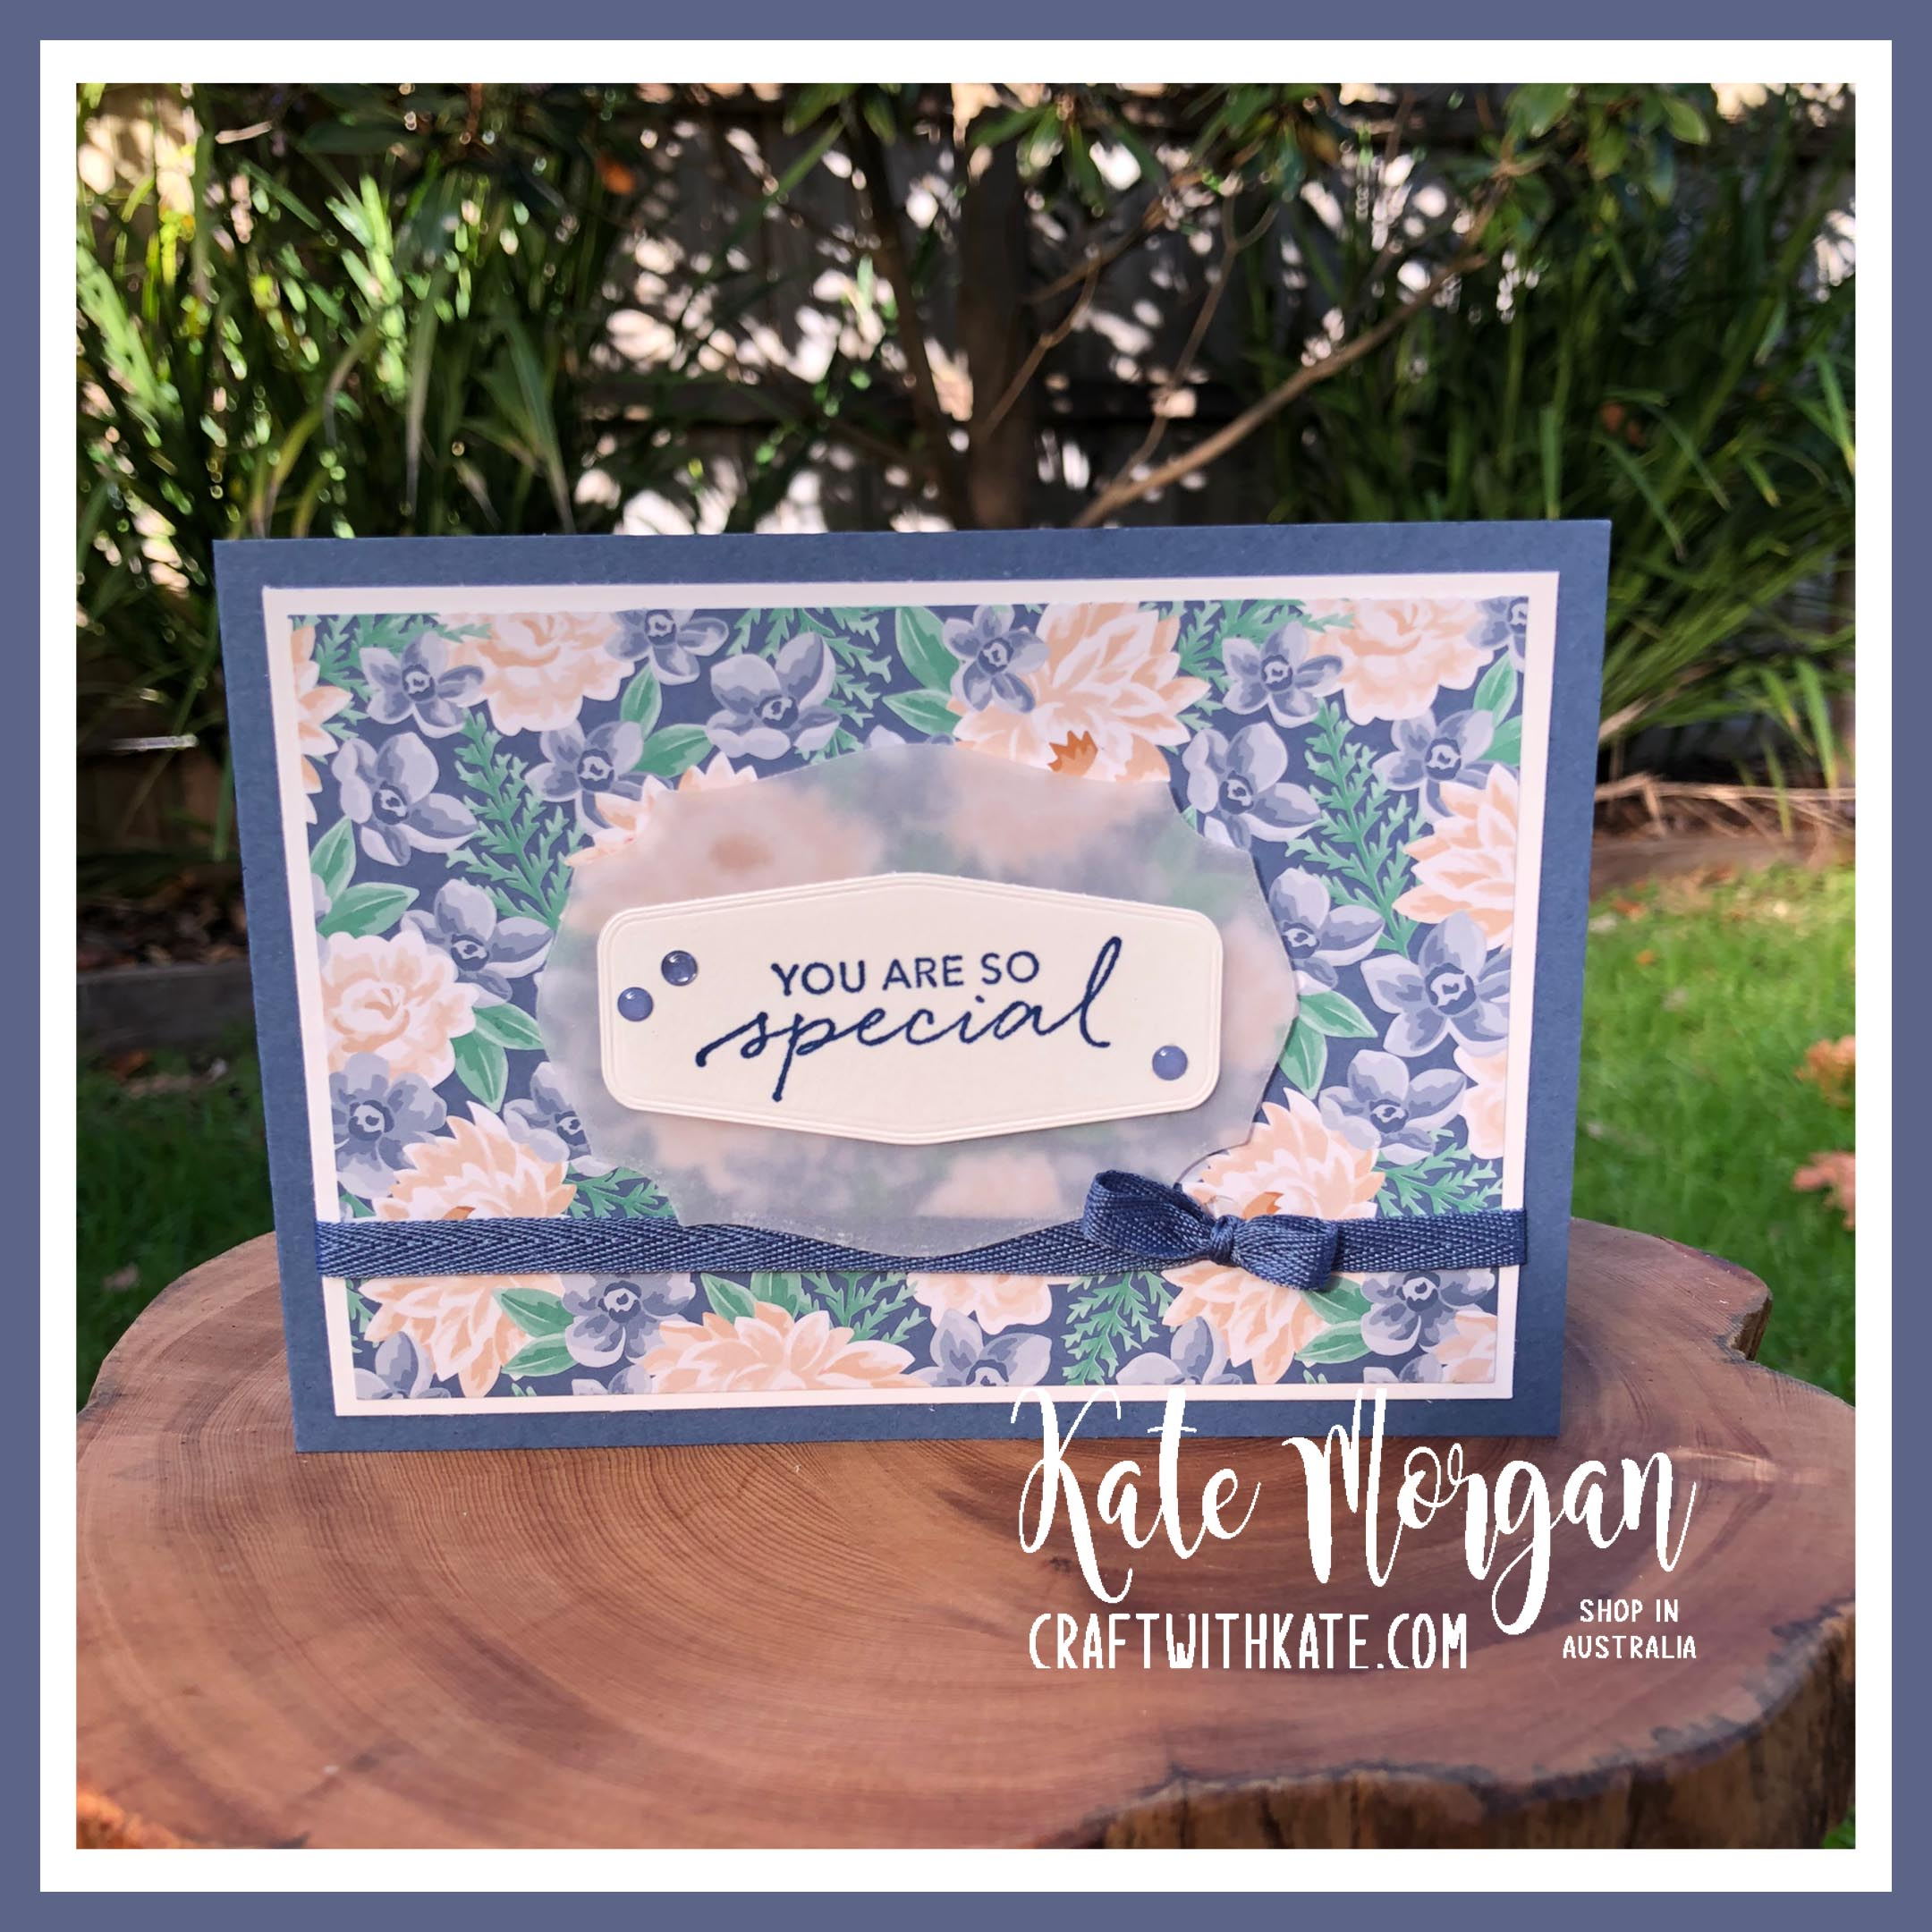 Misty Moonlight & Flowers for Every Season DSP by Kate Morgan, Stampin Up Australia 2020